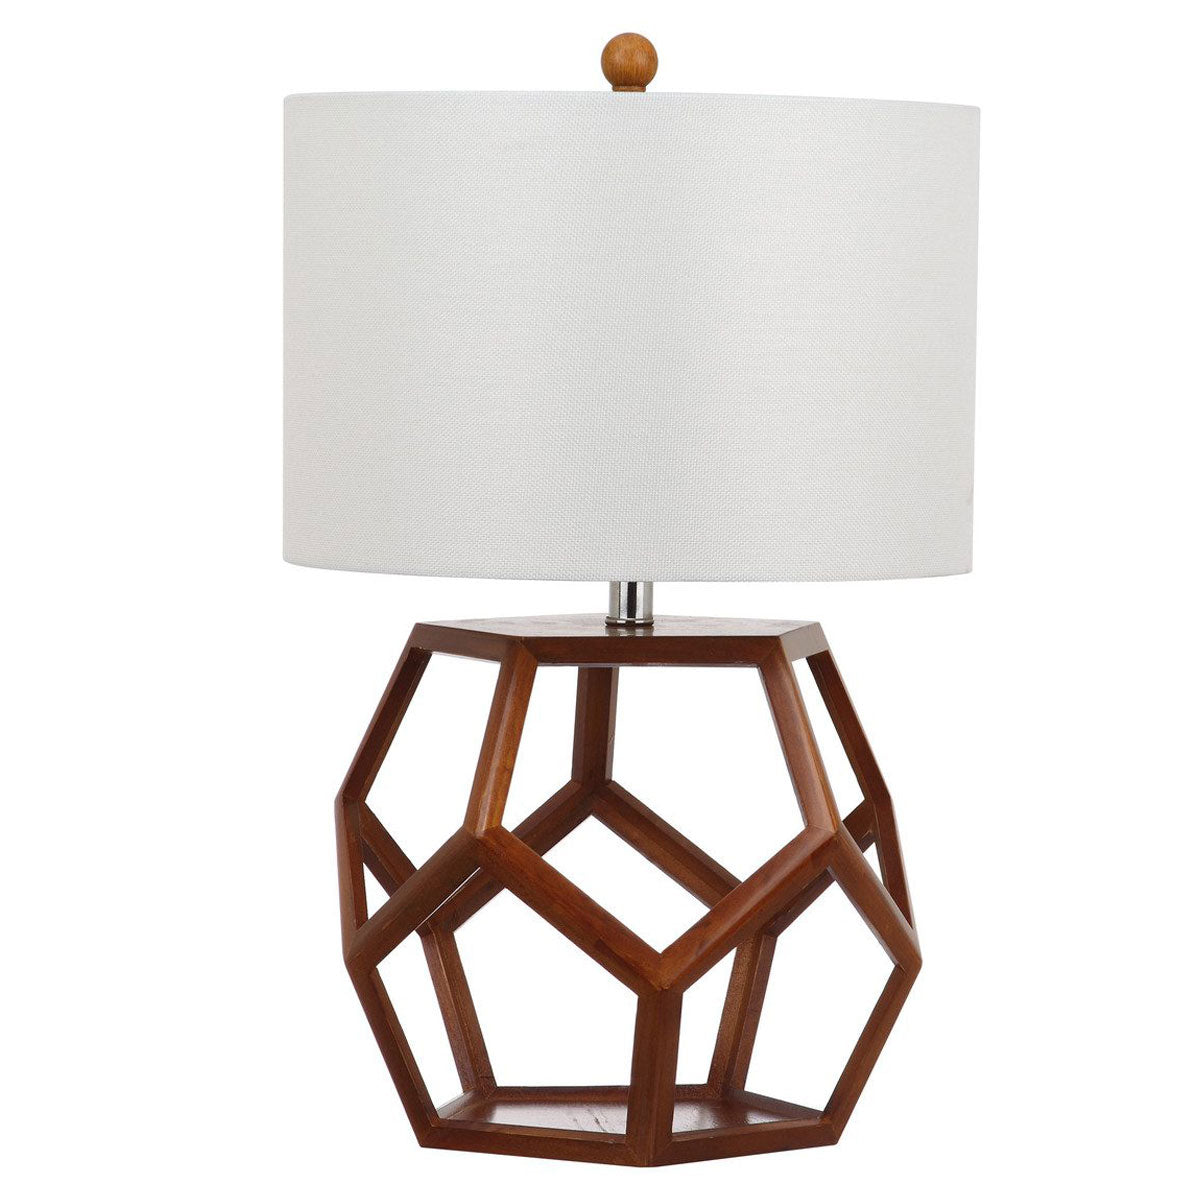 Dixon Honeycomb Lamp